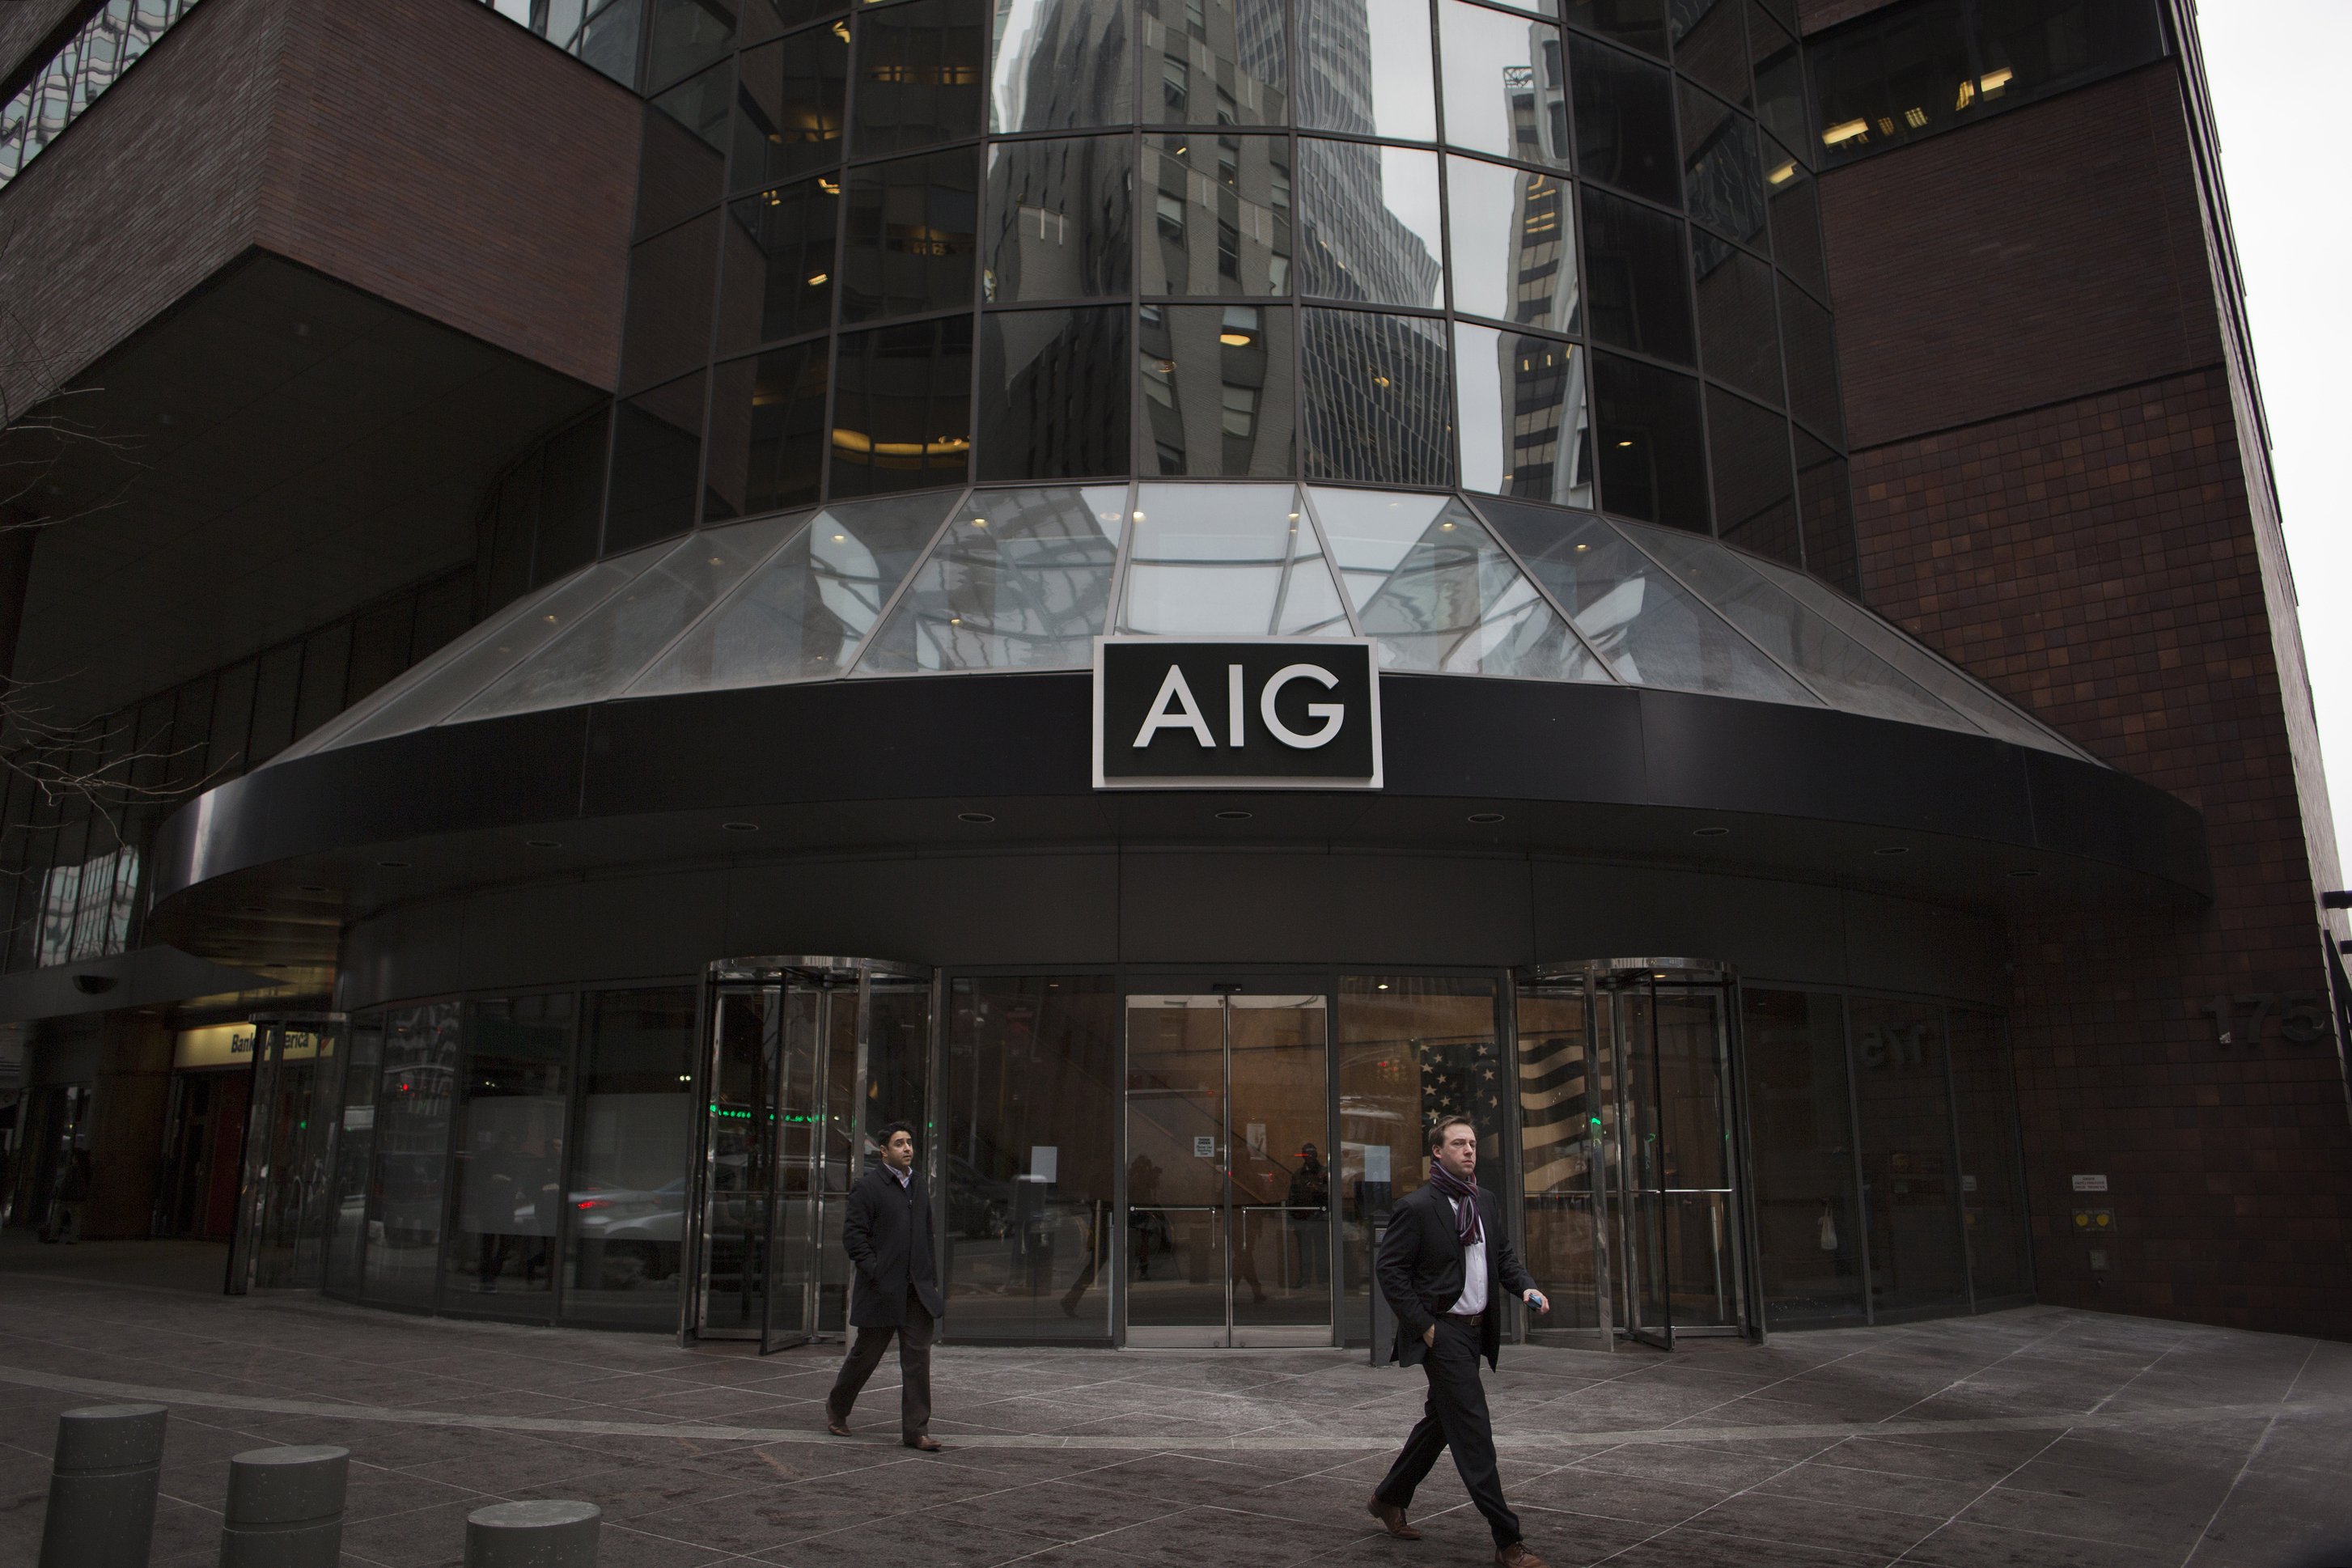 The American International Group Inc. Offices As Company Cut To Negative By S&P On Plan For Stake Sale, Payout